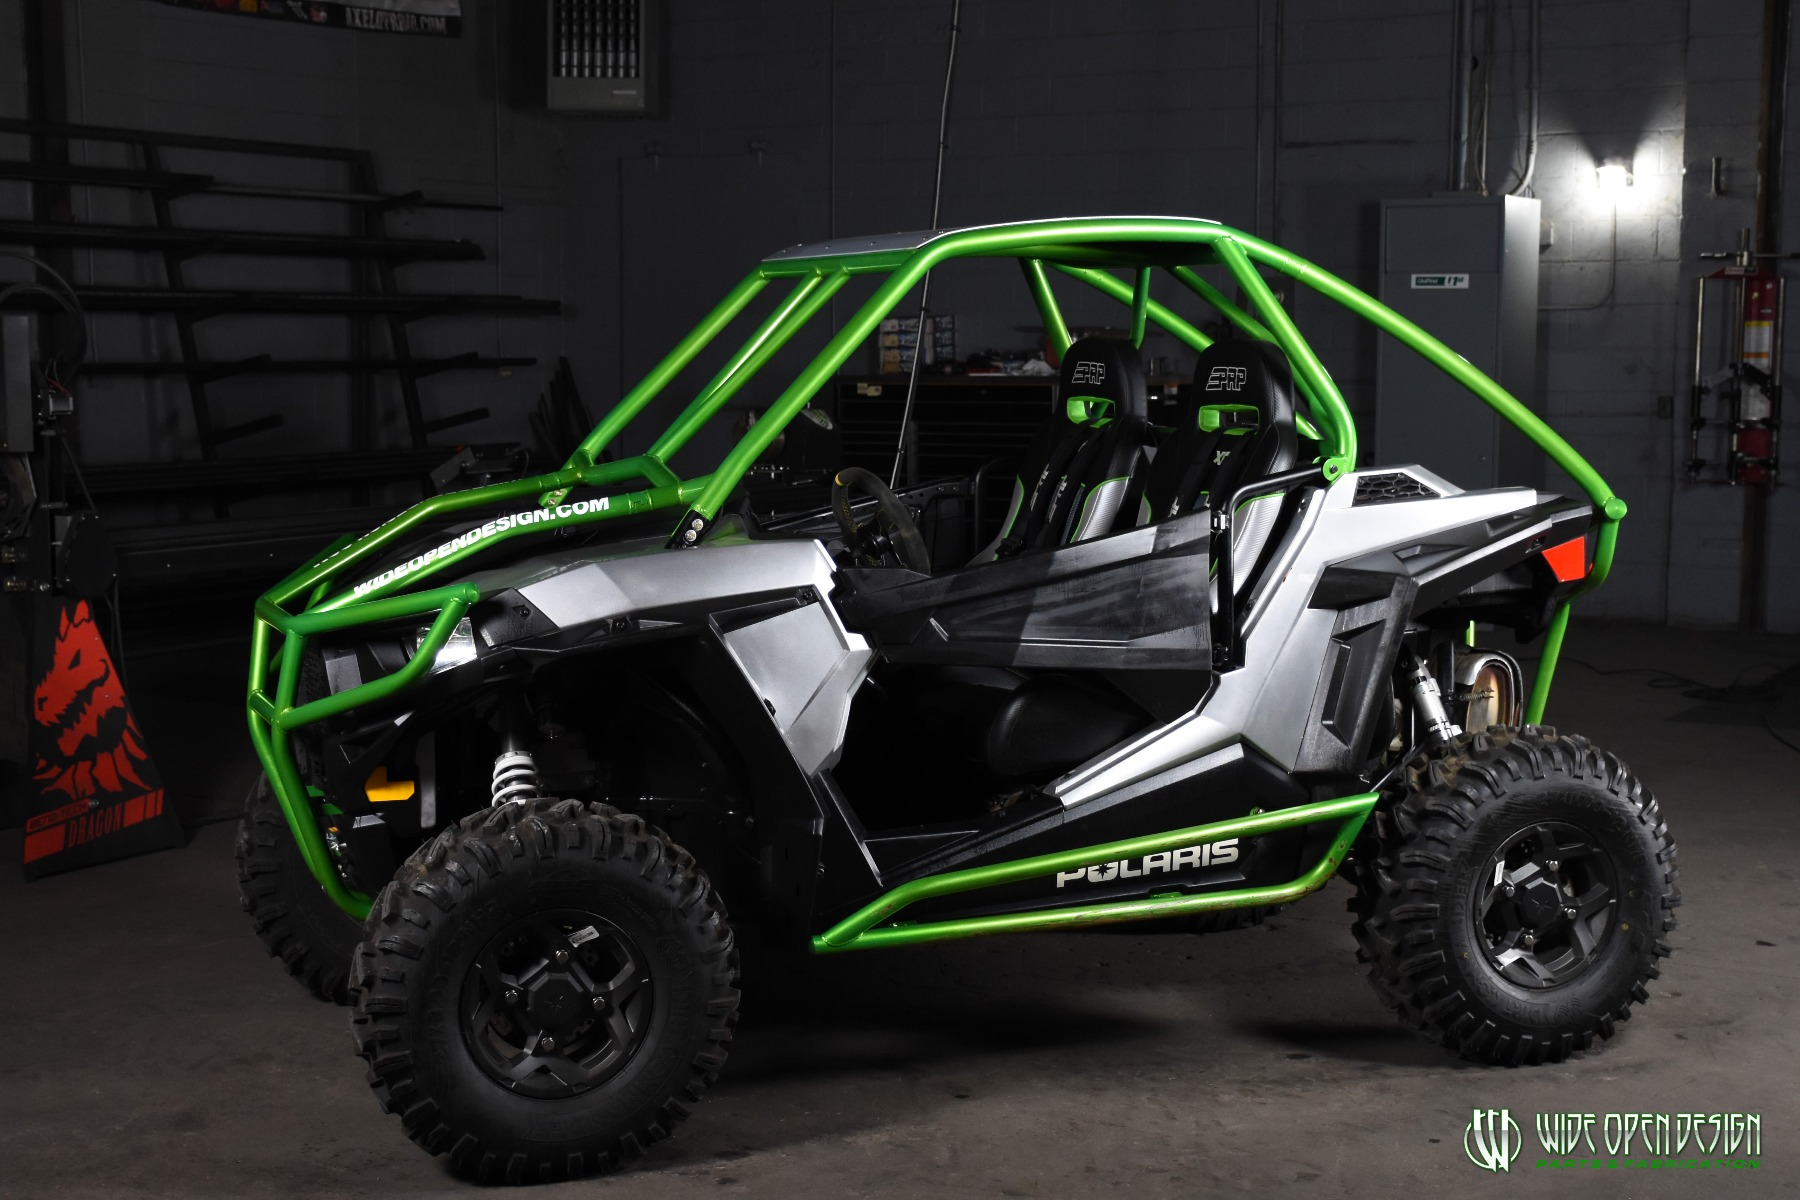 Jason's 1000s RZR with Wide Open Design Rolled Roof Cage, Front Bumper with Tie In, and Rocker Guards 20